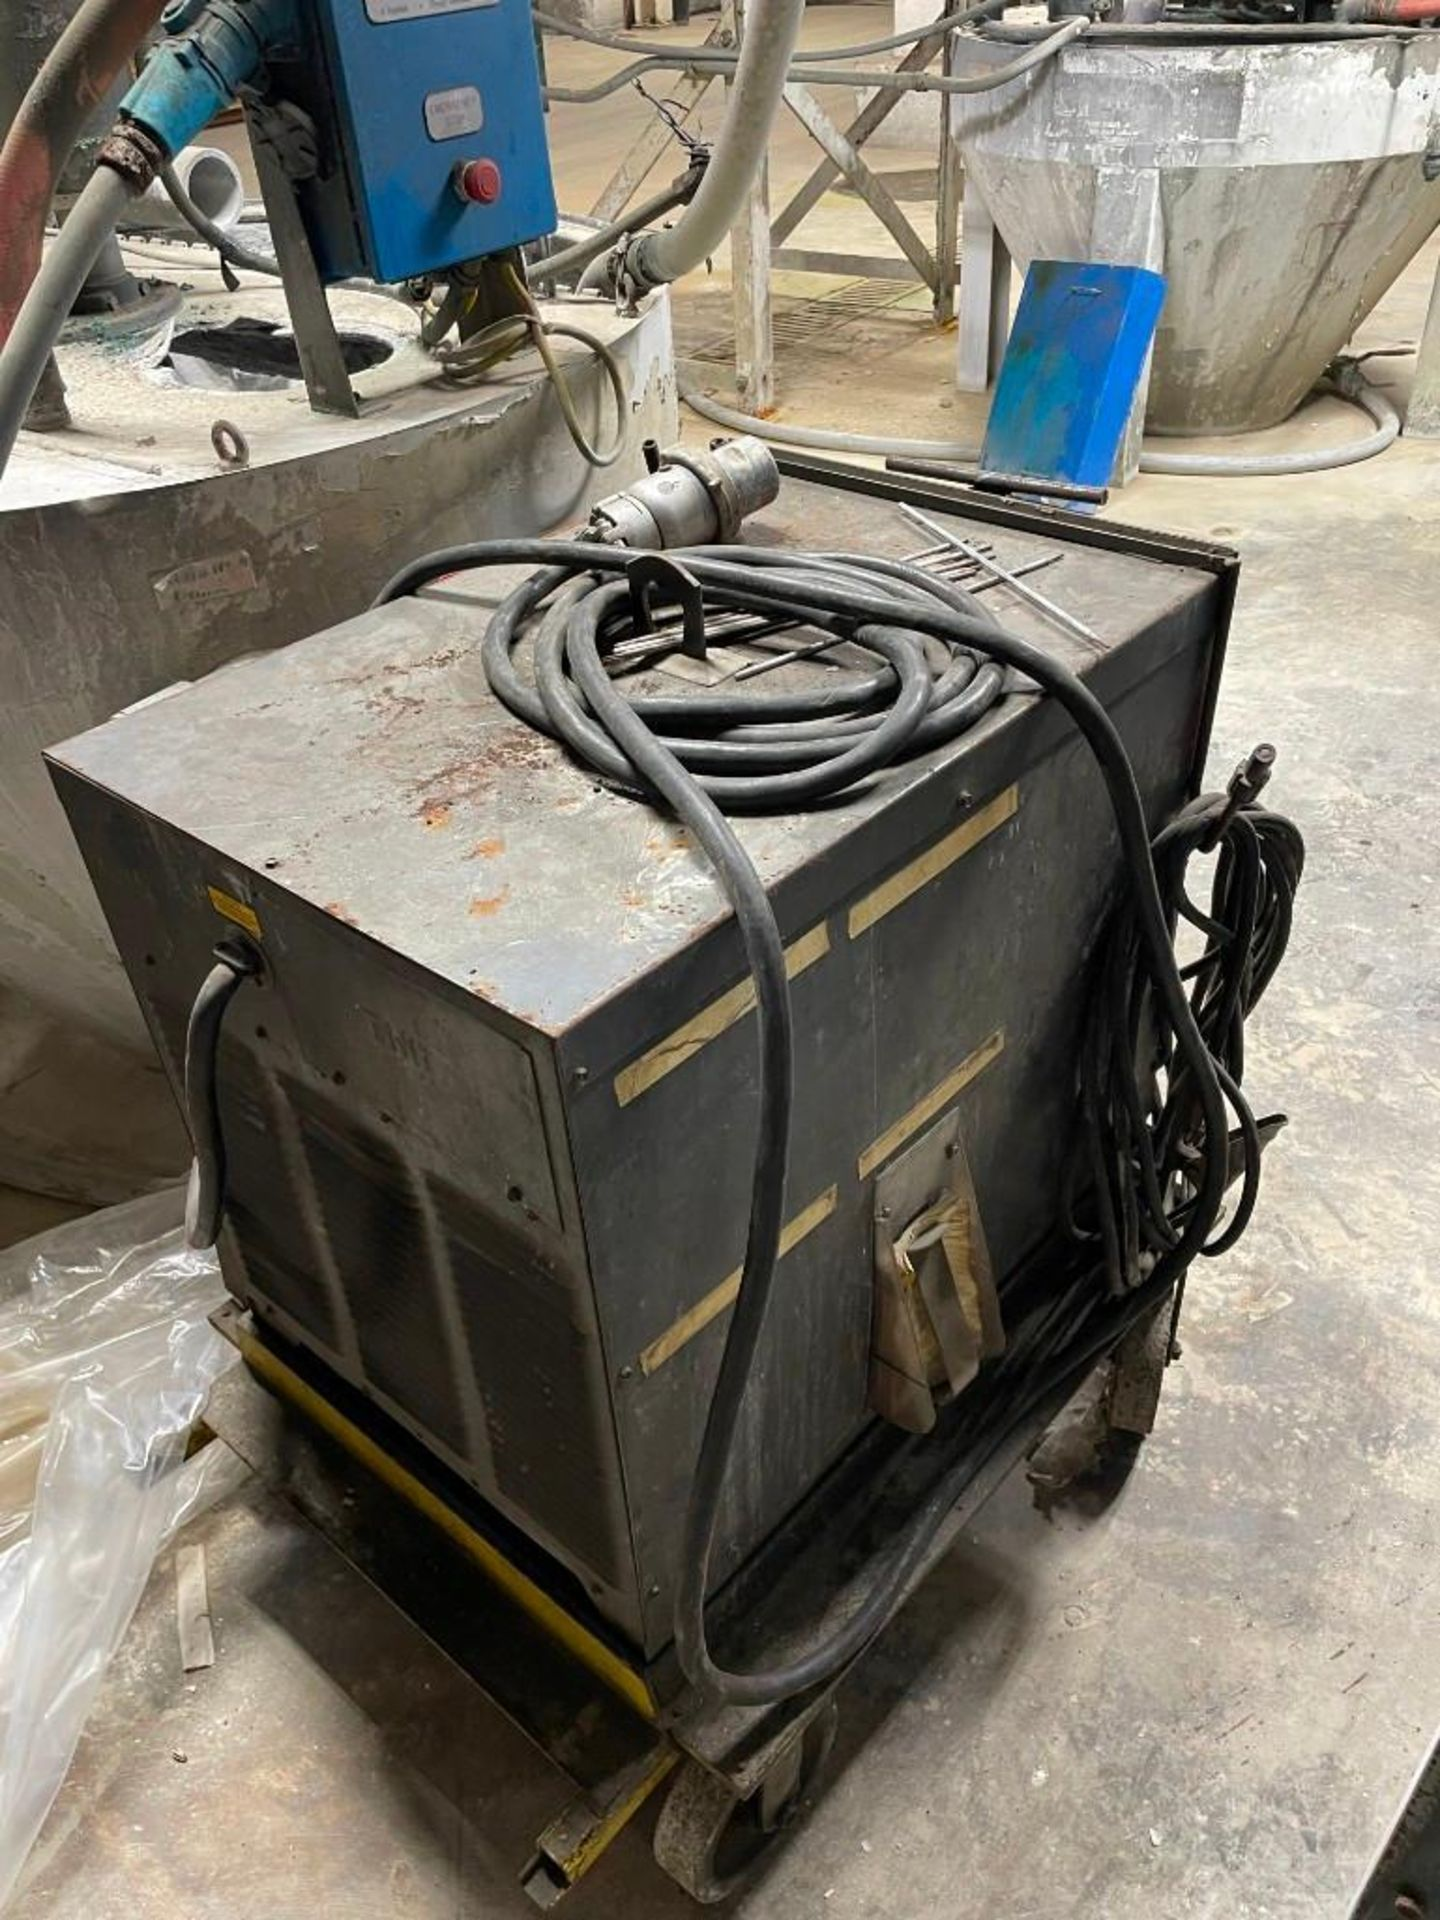 Lincoln Electric Idealarc R3R-300 DC Arc Welder - Image 3 of 5